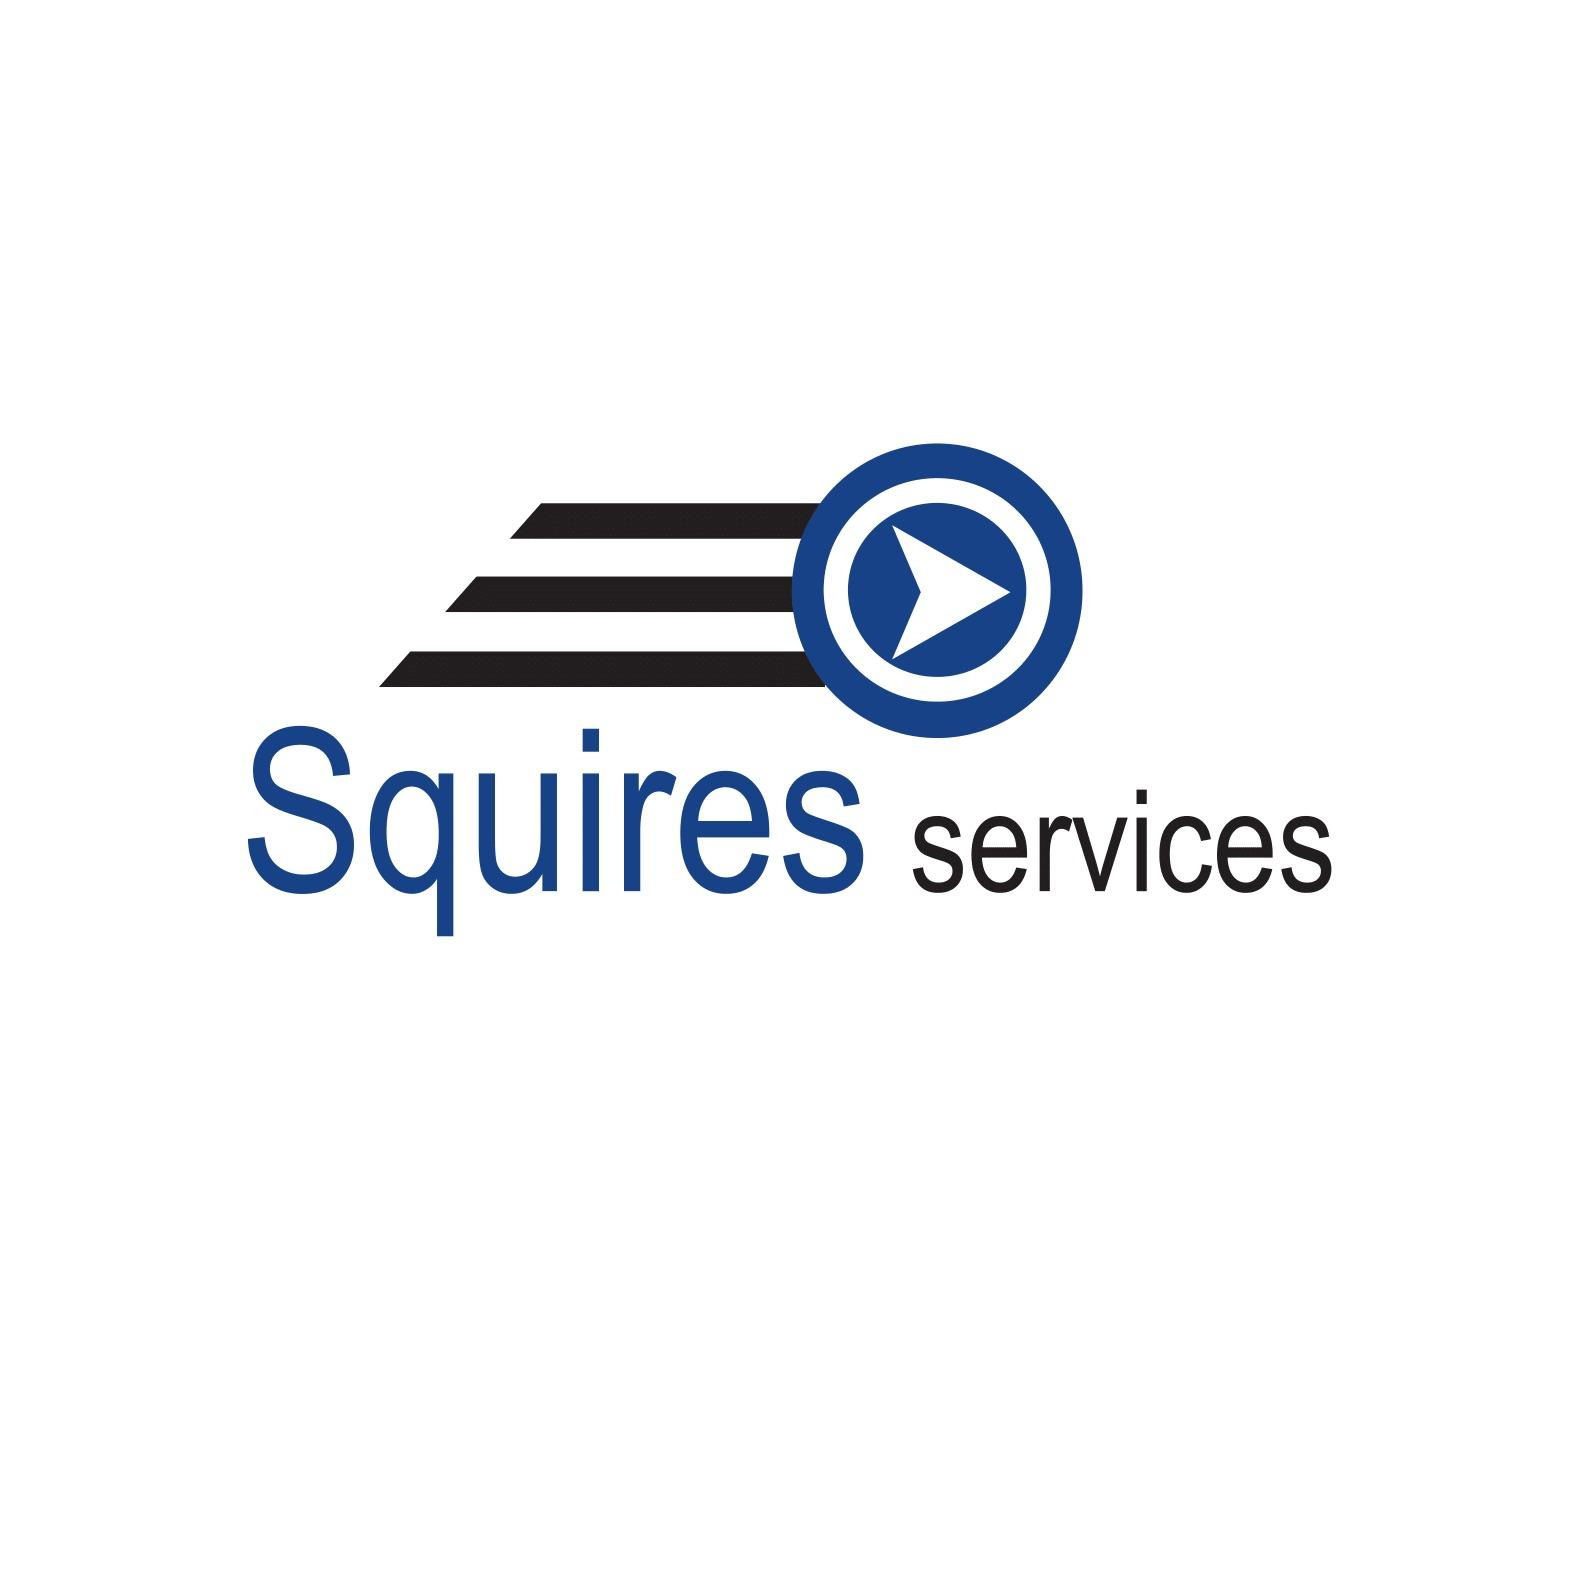 Squires Services - St. Louis Auto Repair & 24-Hour Towing